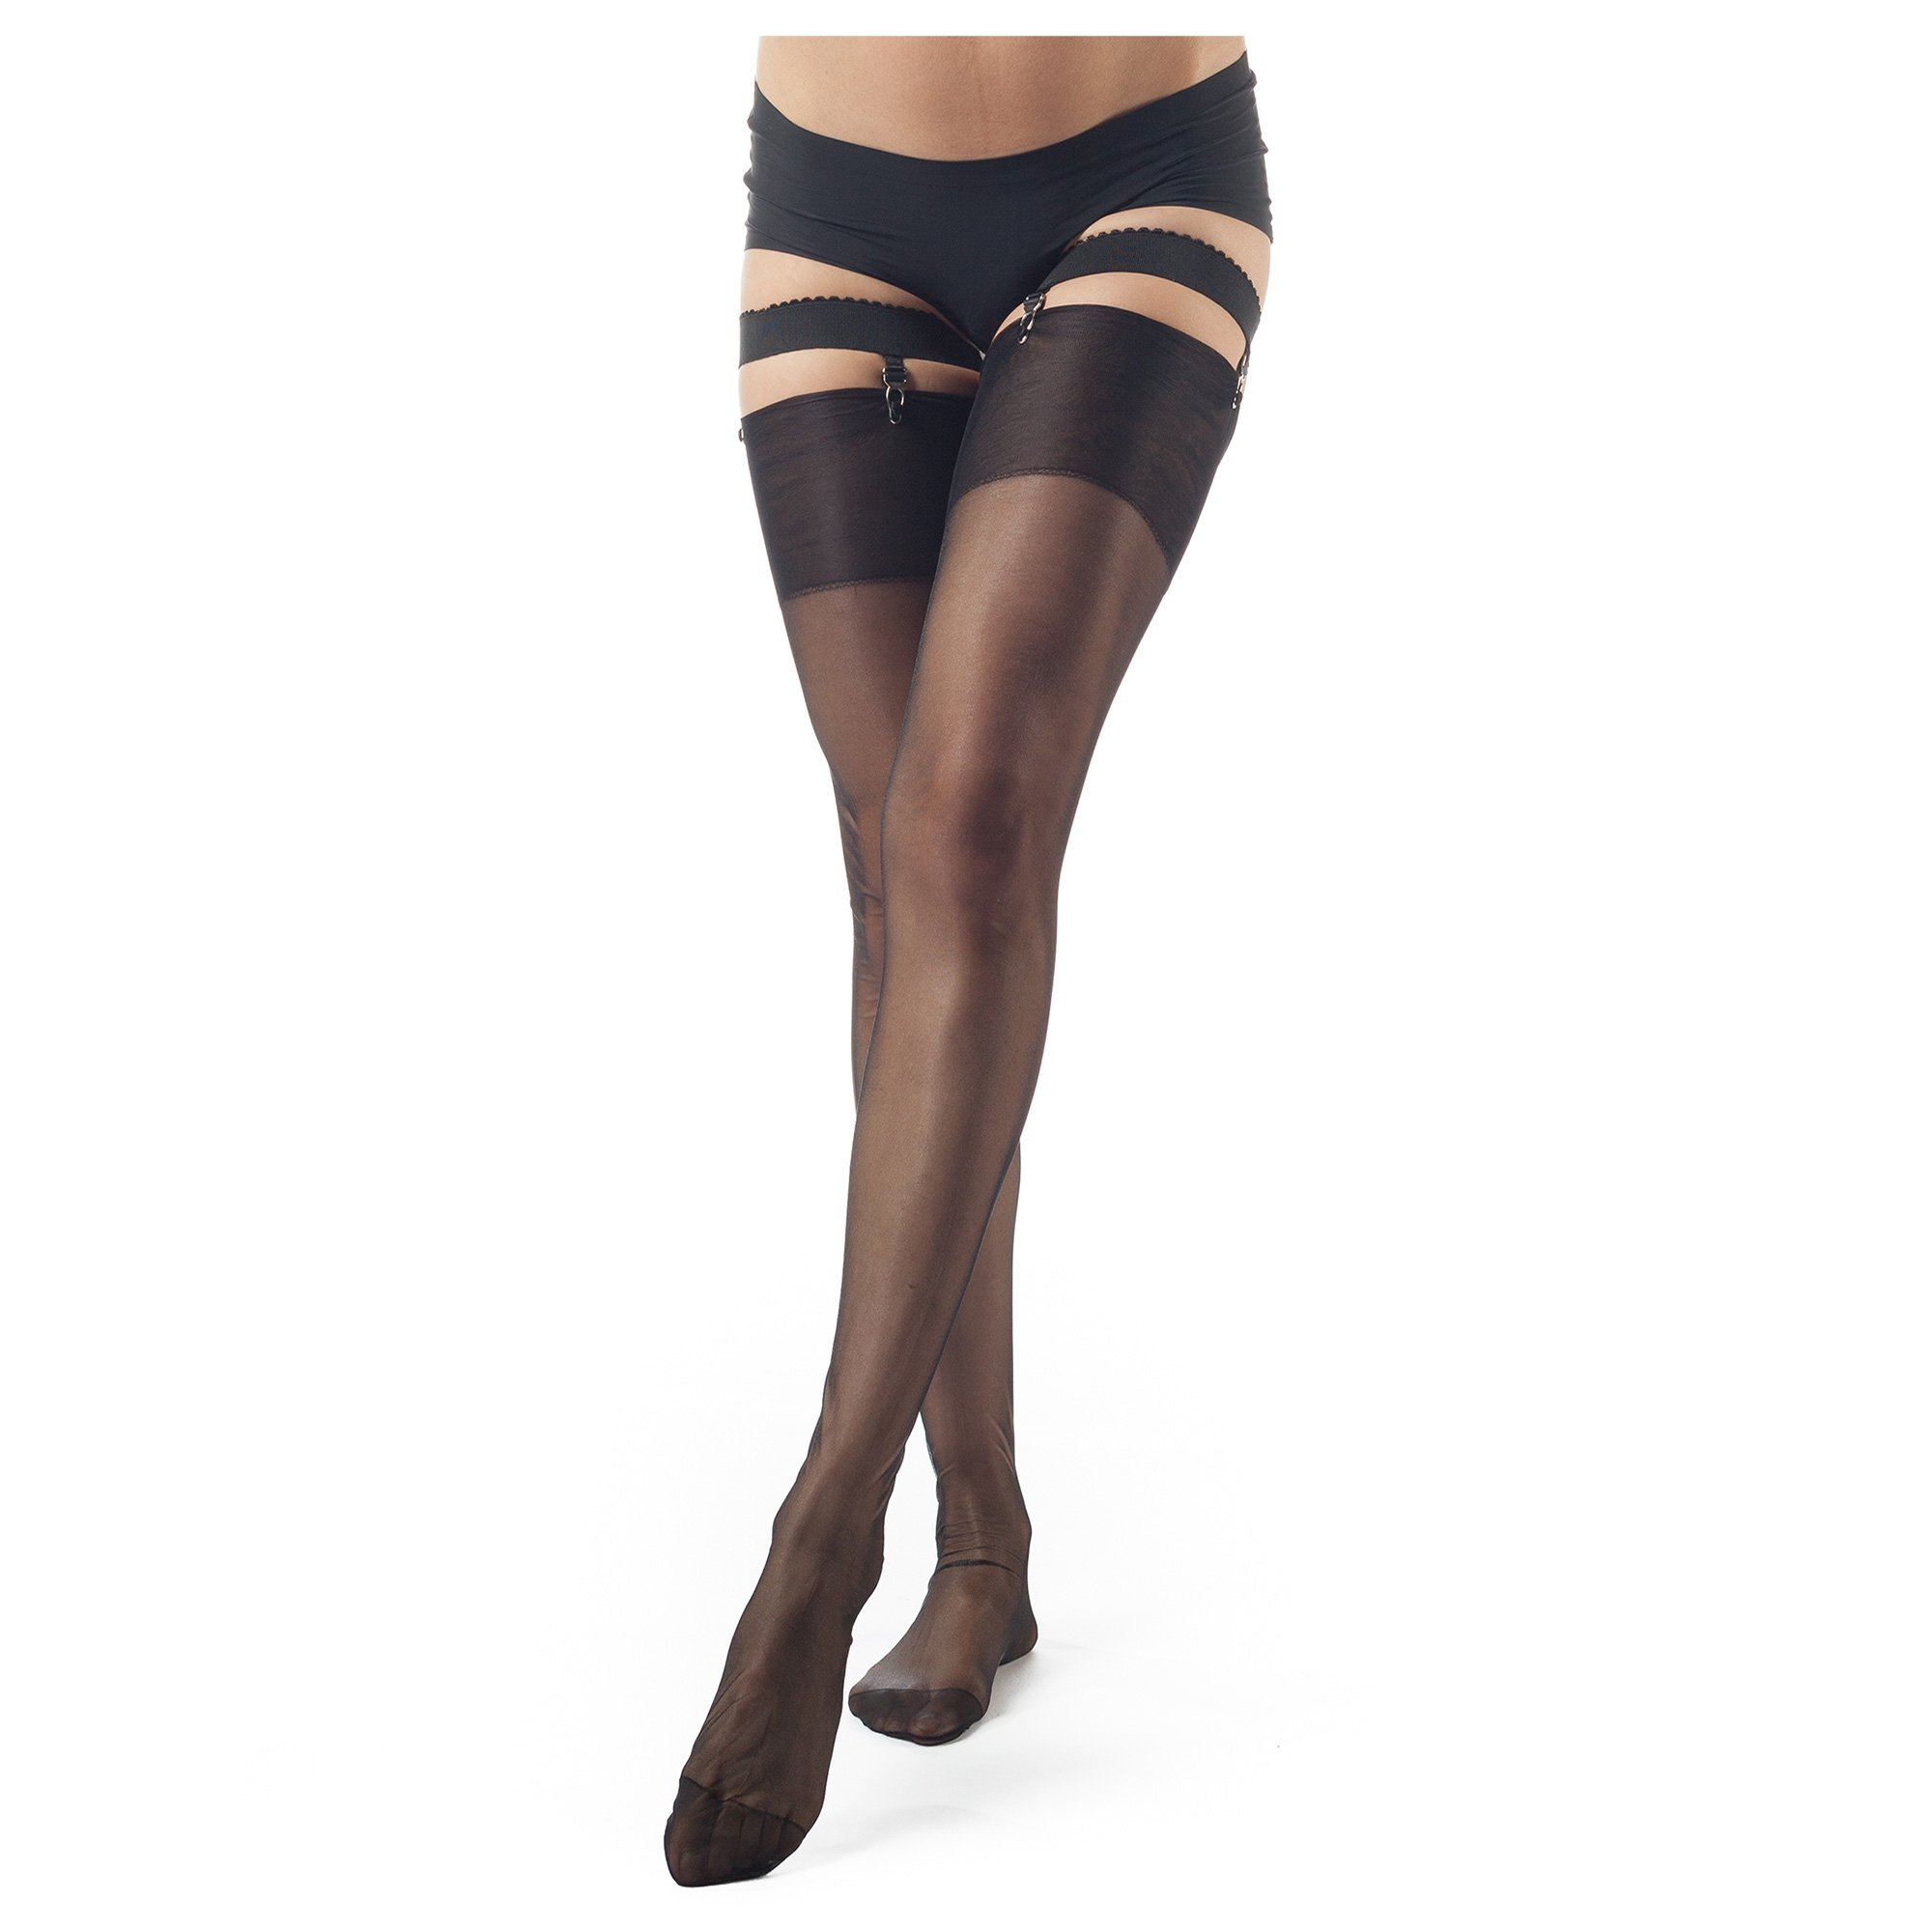 ElsaYX Women's Classic Pure Nylon Glossy Thigh High Stockings for use with Garter Belt Lingerie,3 Pairs-black/Beige/Grey,L (Height 5'2''-5'6'') by ElsaYX (Image #2)